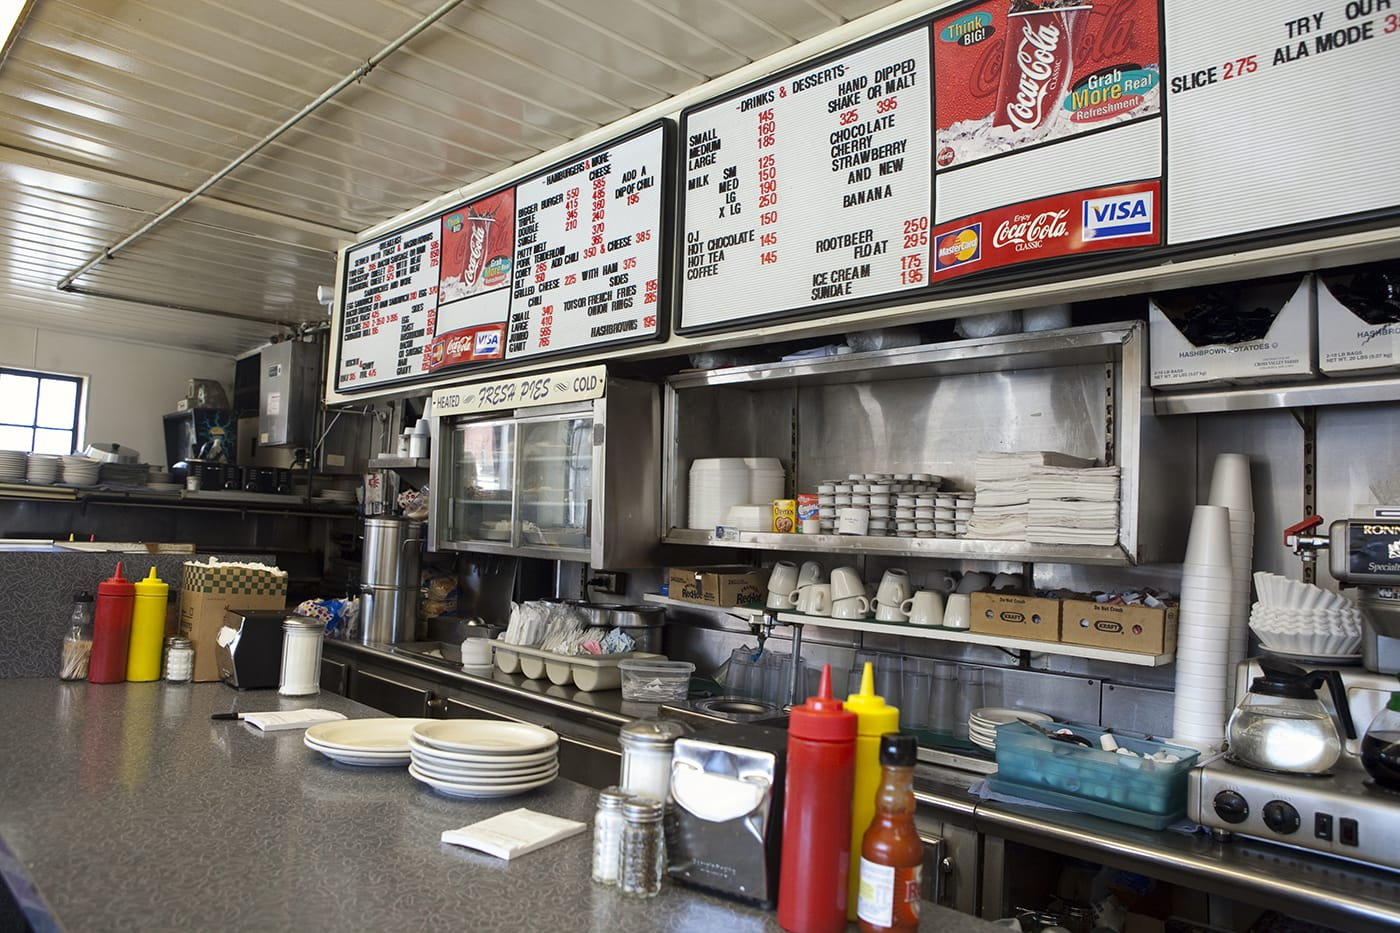 Town Topic Hamburgers in Kansas City, Missouri | Kansas City diner for a road trip stop for lunch or dinner.